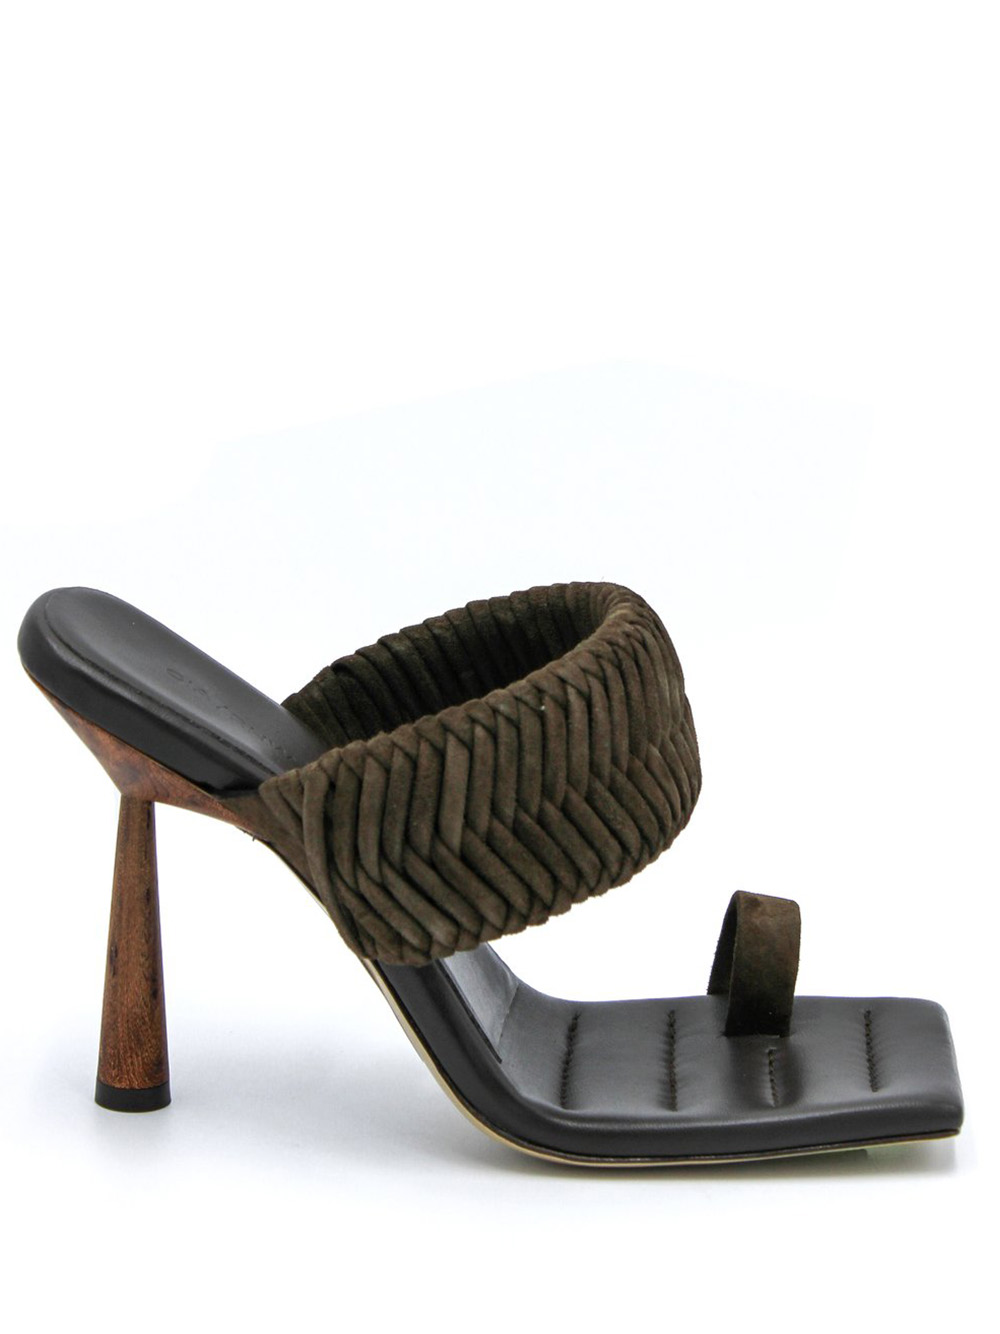 Rosie 1 Toe Ring mule with woven strap in